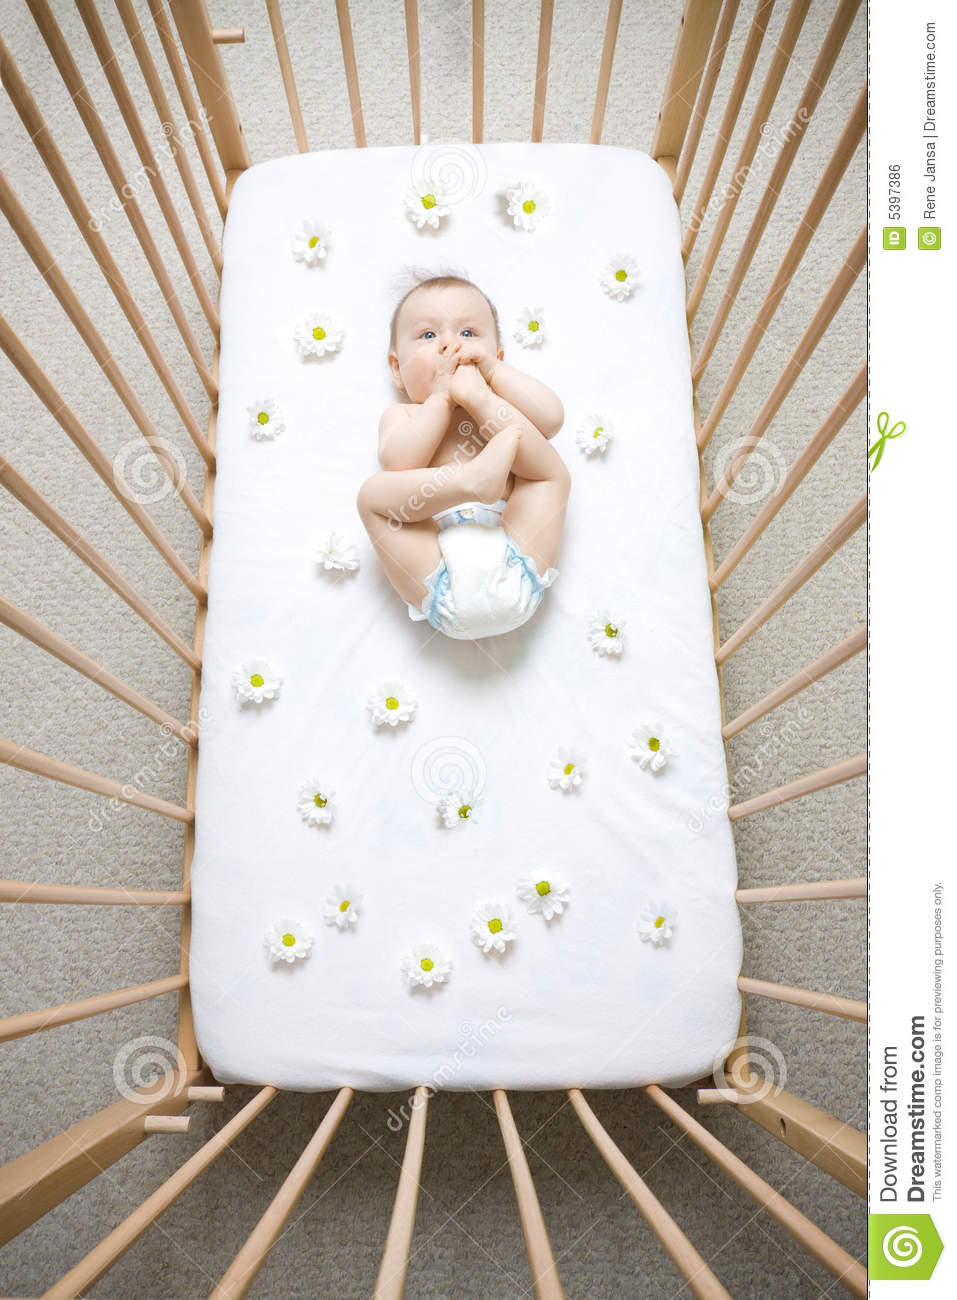 Baby cribs for free - Baby In Crib